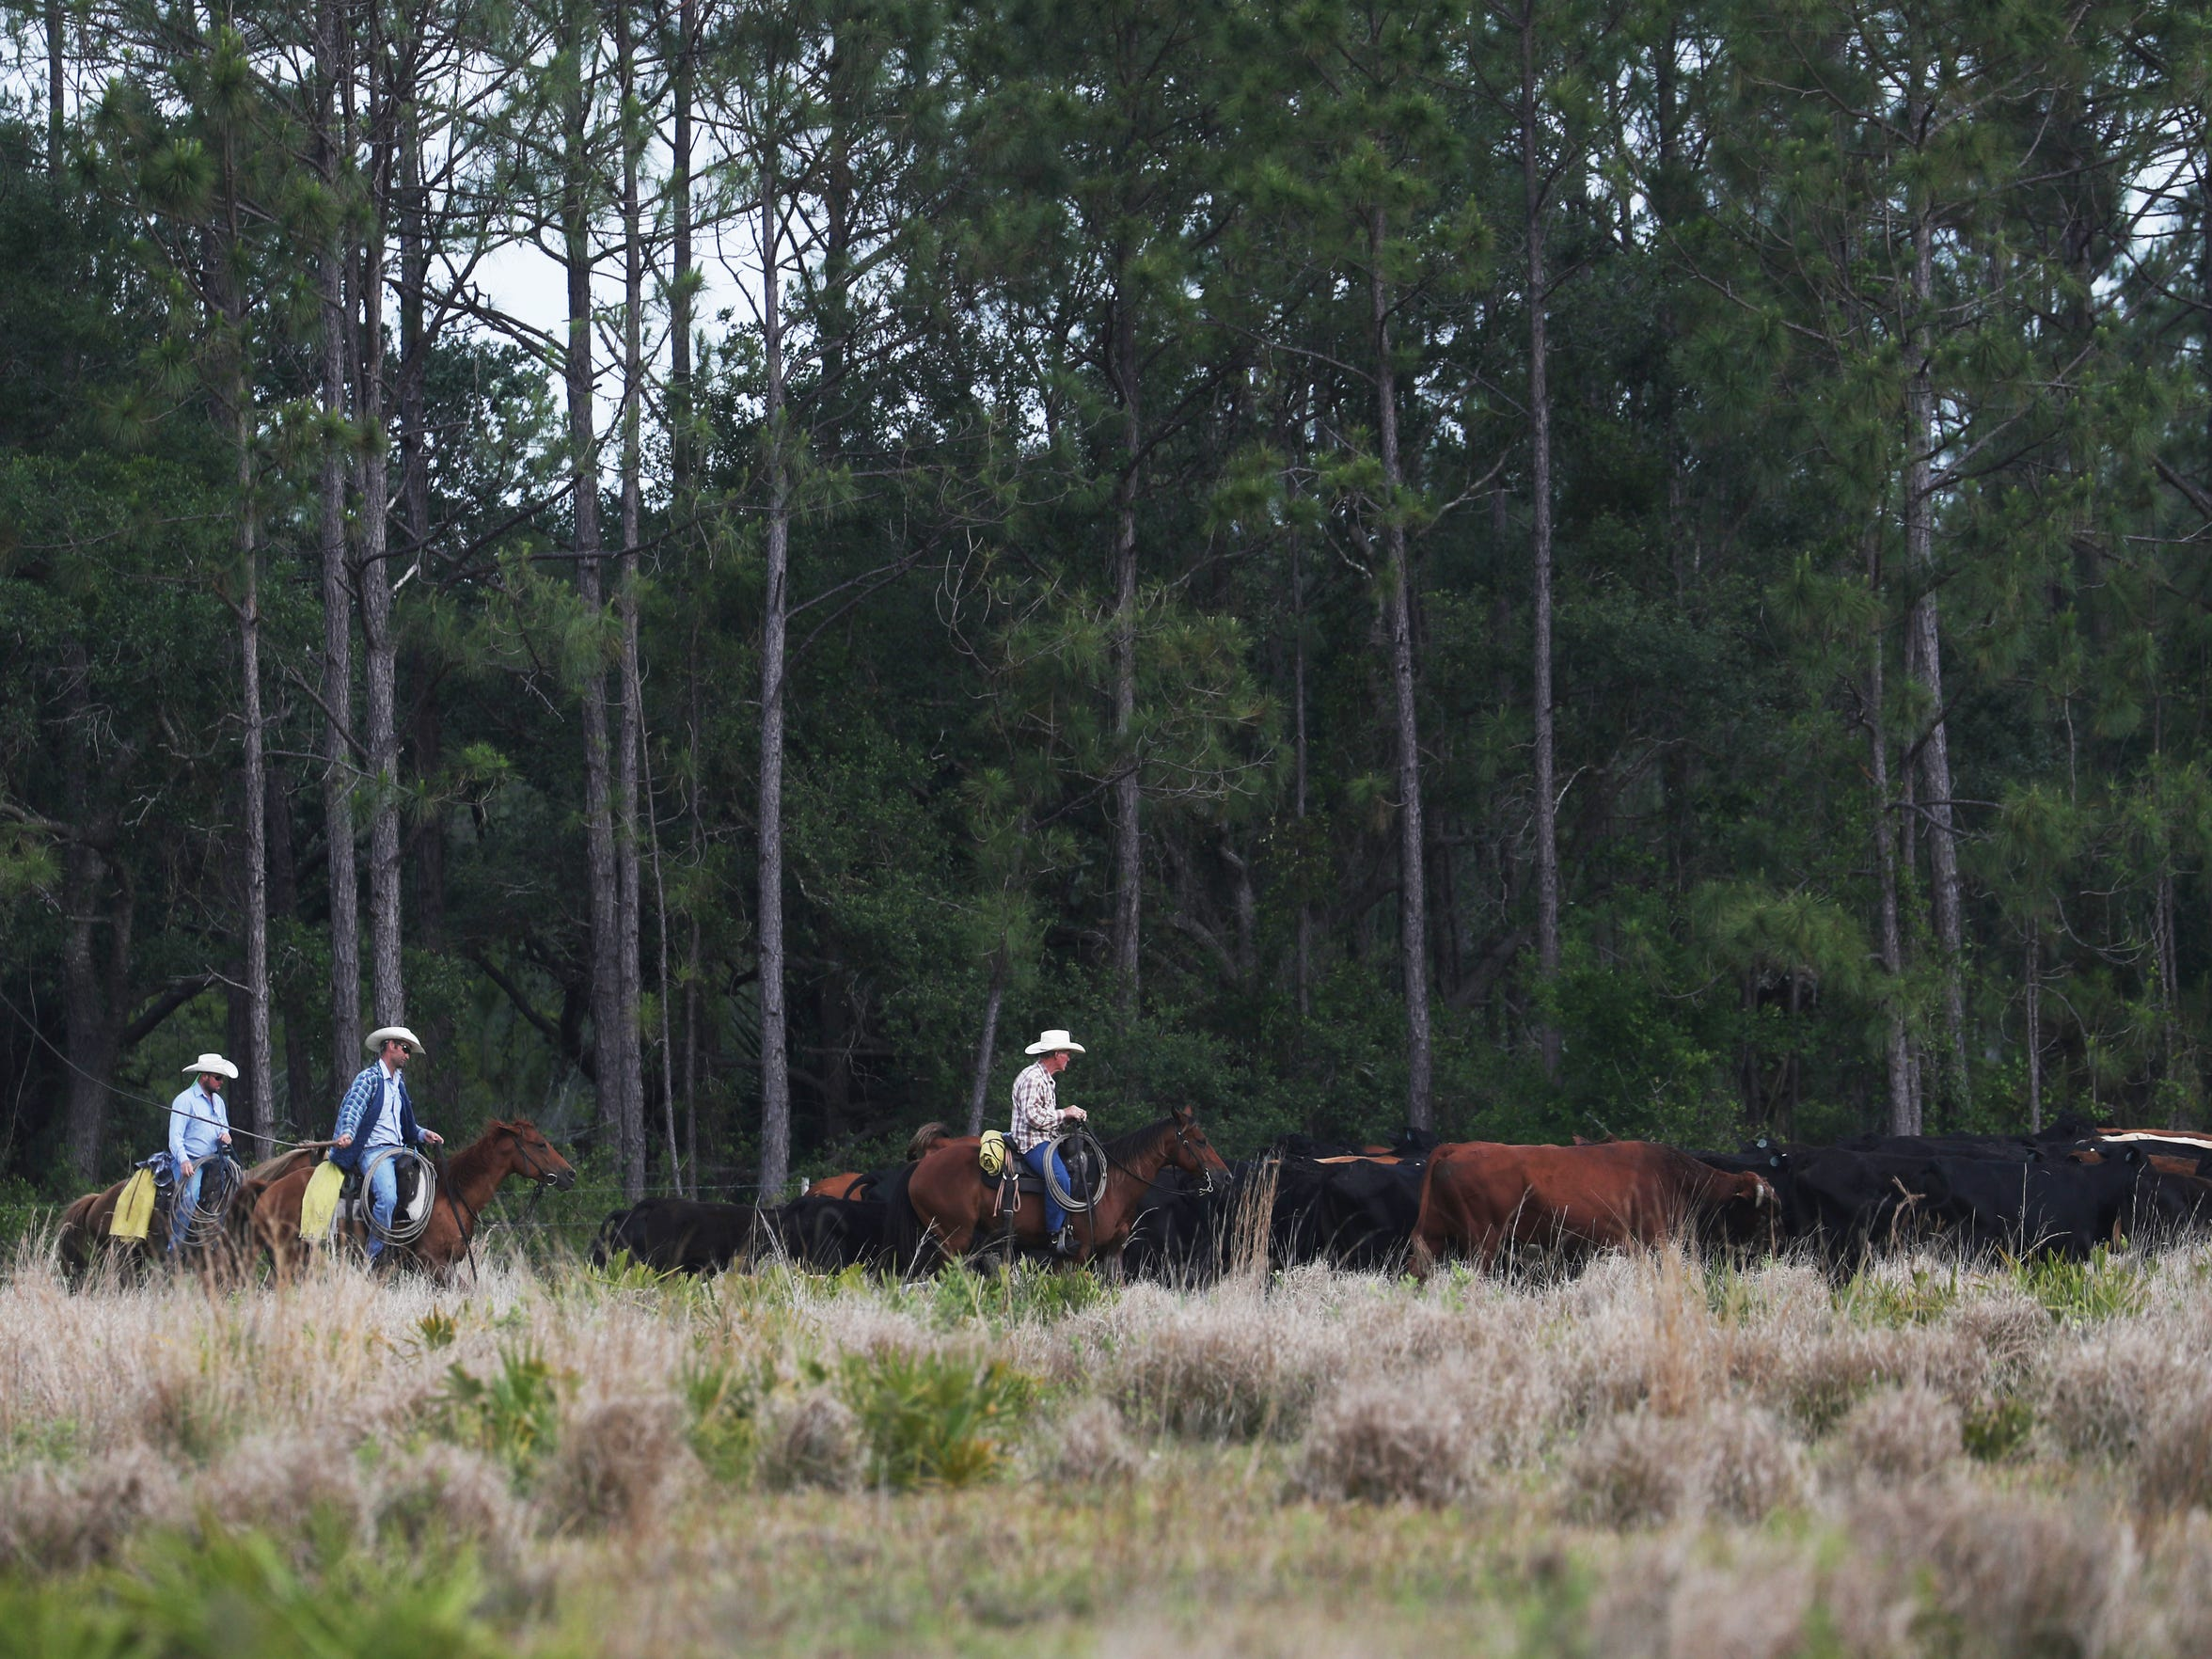 Cowboys move cattle along State Road 29 between LaBelle and Palmdale April 16, 2018. This area is near Fisheating Creek which runs into Lake Okeechobee. Ranchers are often blamed for nutrients in Florida waterways.